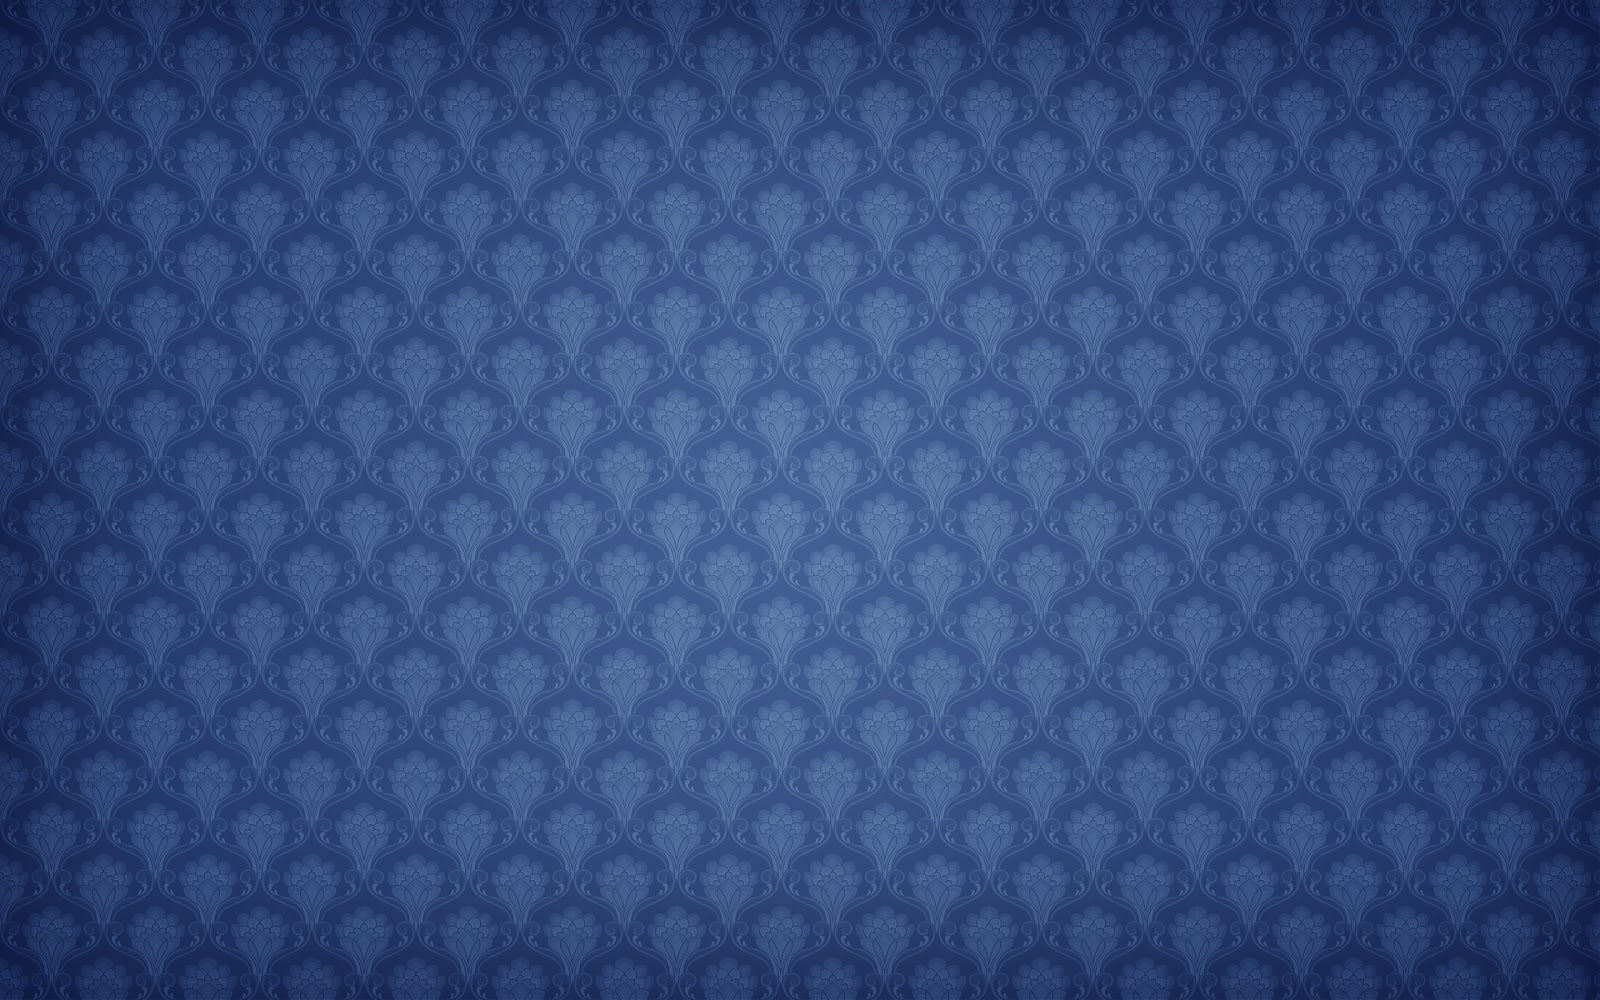 Background Poster Pics: Background Patterns